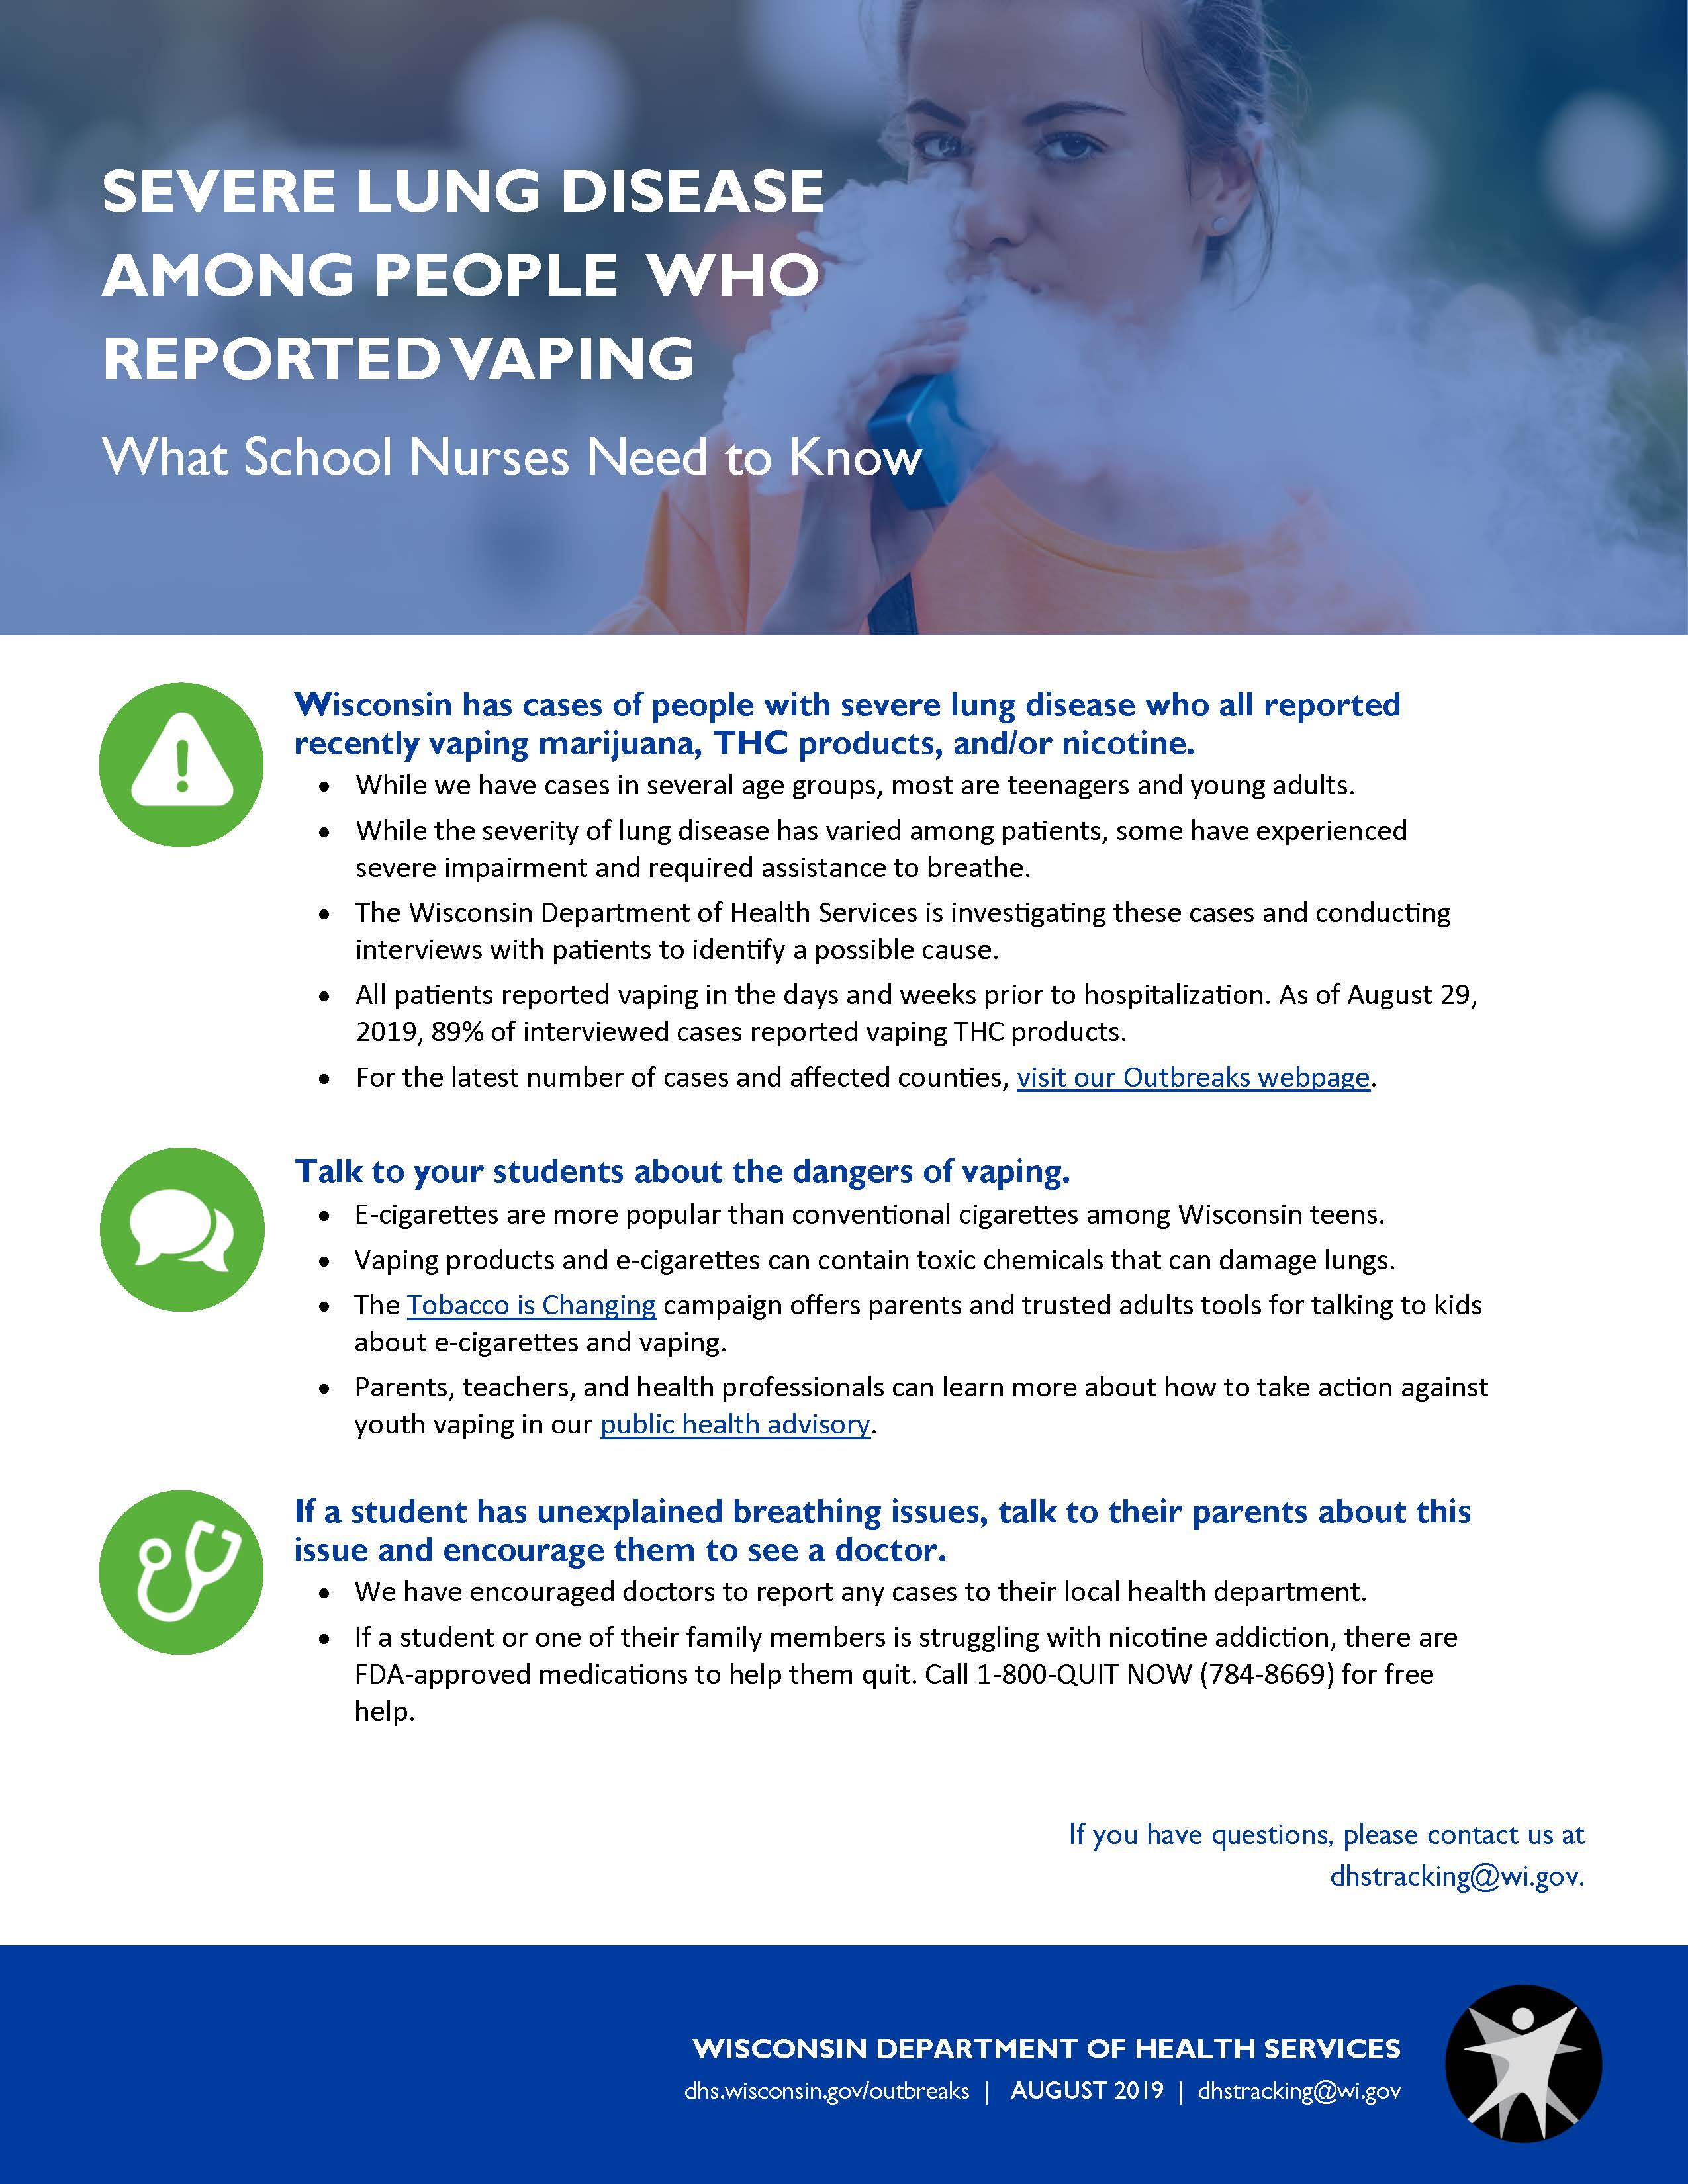 SEVERE LUNG DISEASE AMONG PEOPLE WHO REPORTED VAPING